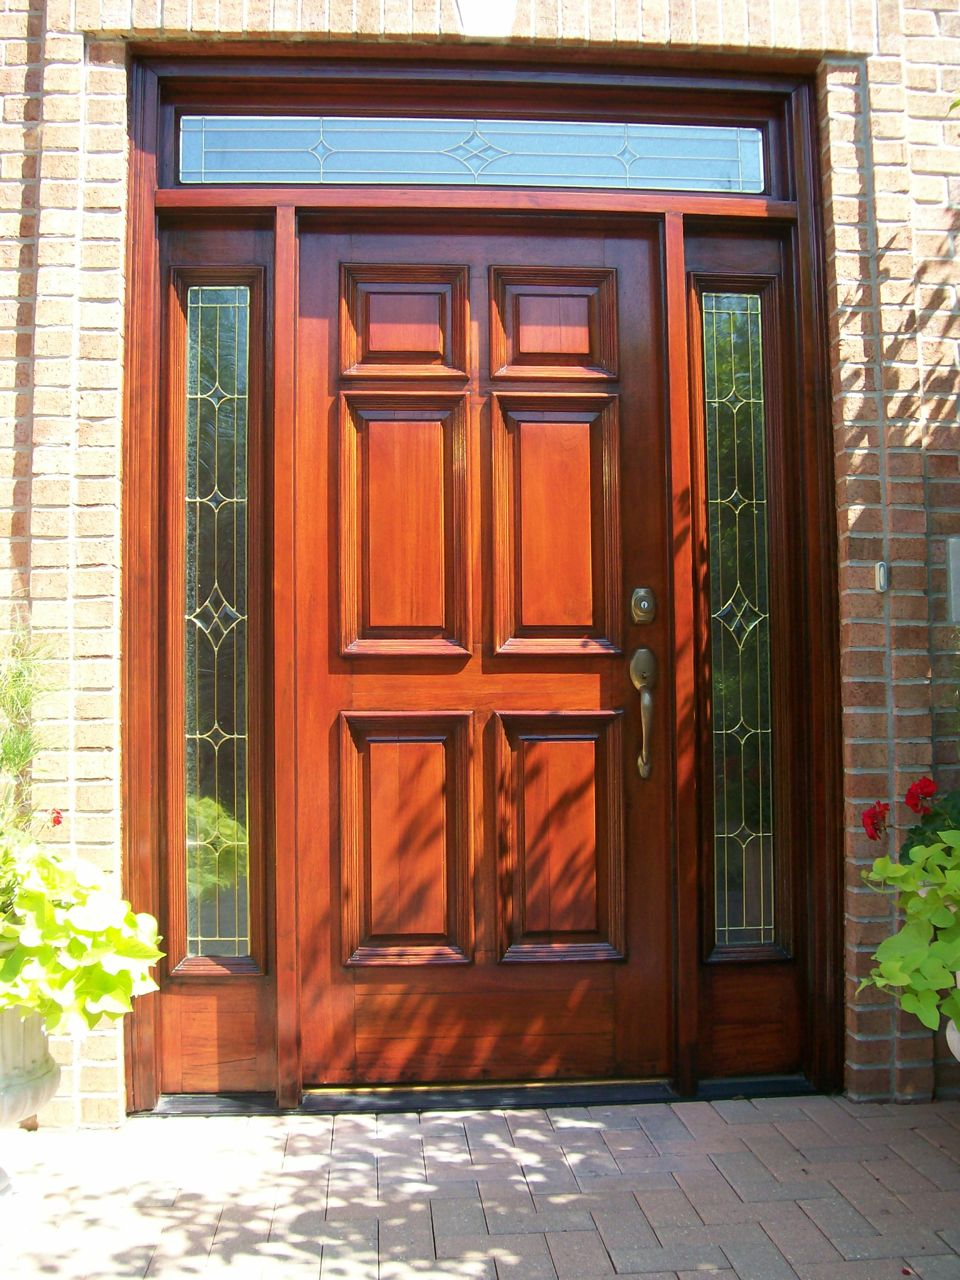 Checking wood doors weather stripping saves money painting in wood front door after refinishing rubansaba